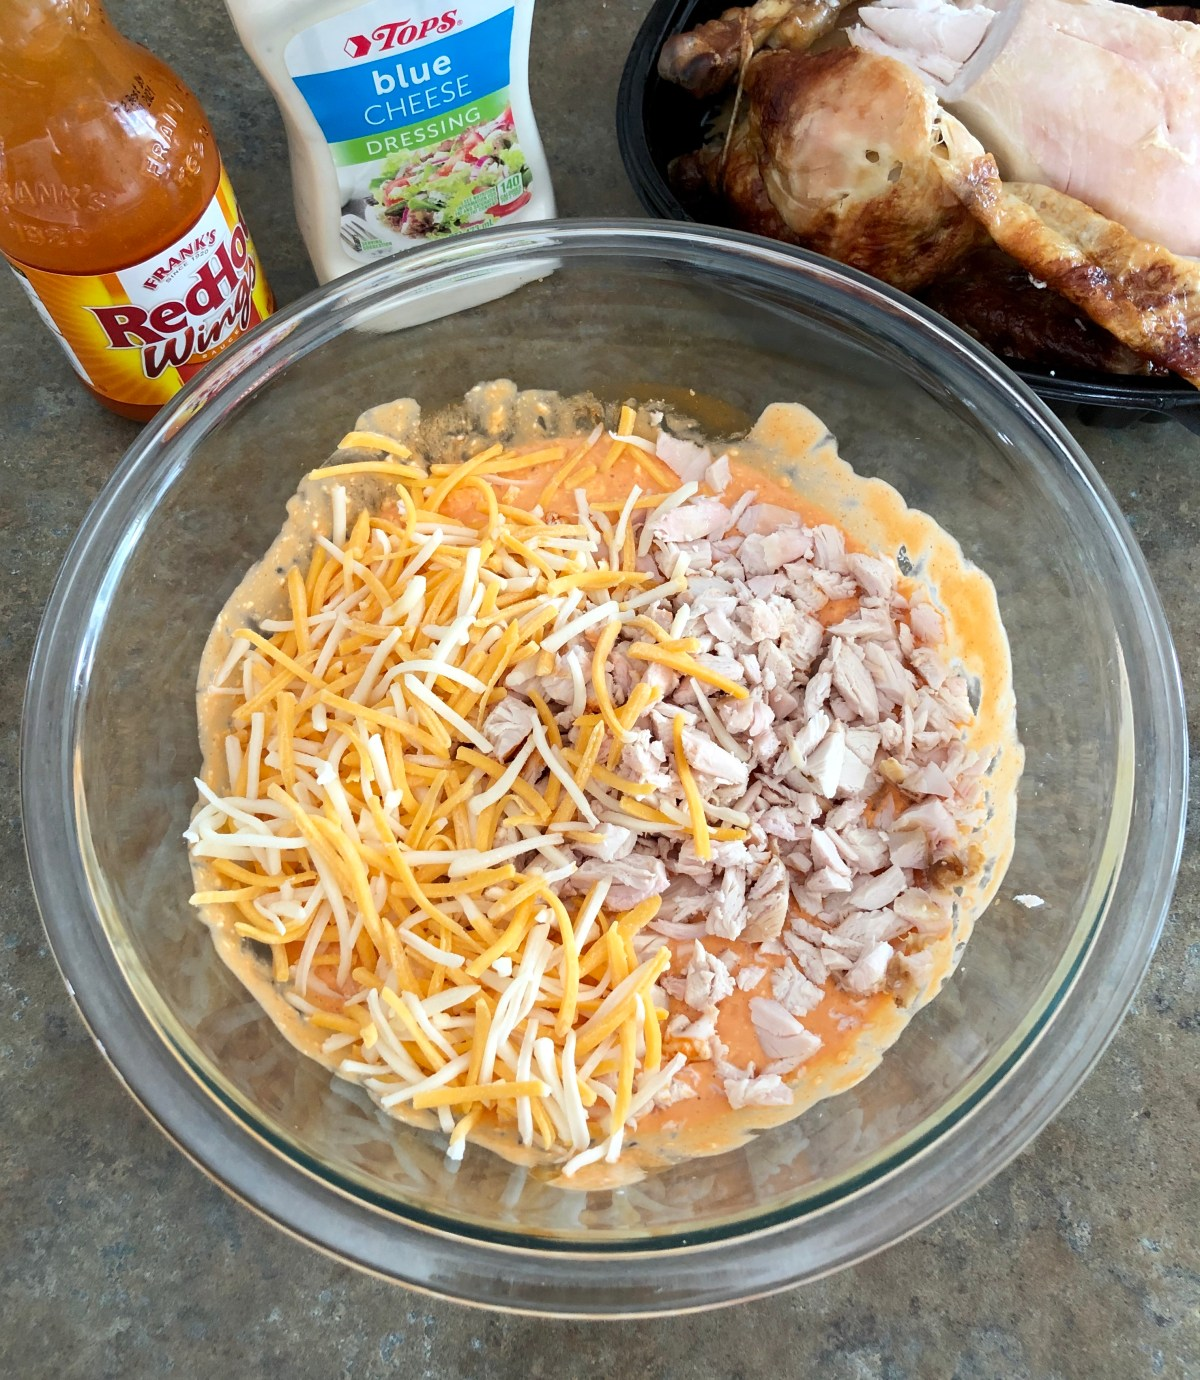 Cooked chicken and colby jack cheese are added to the bowl.